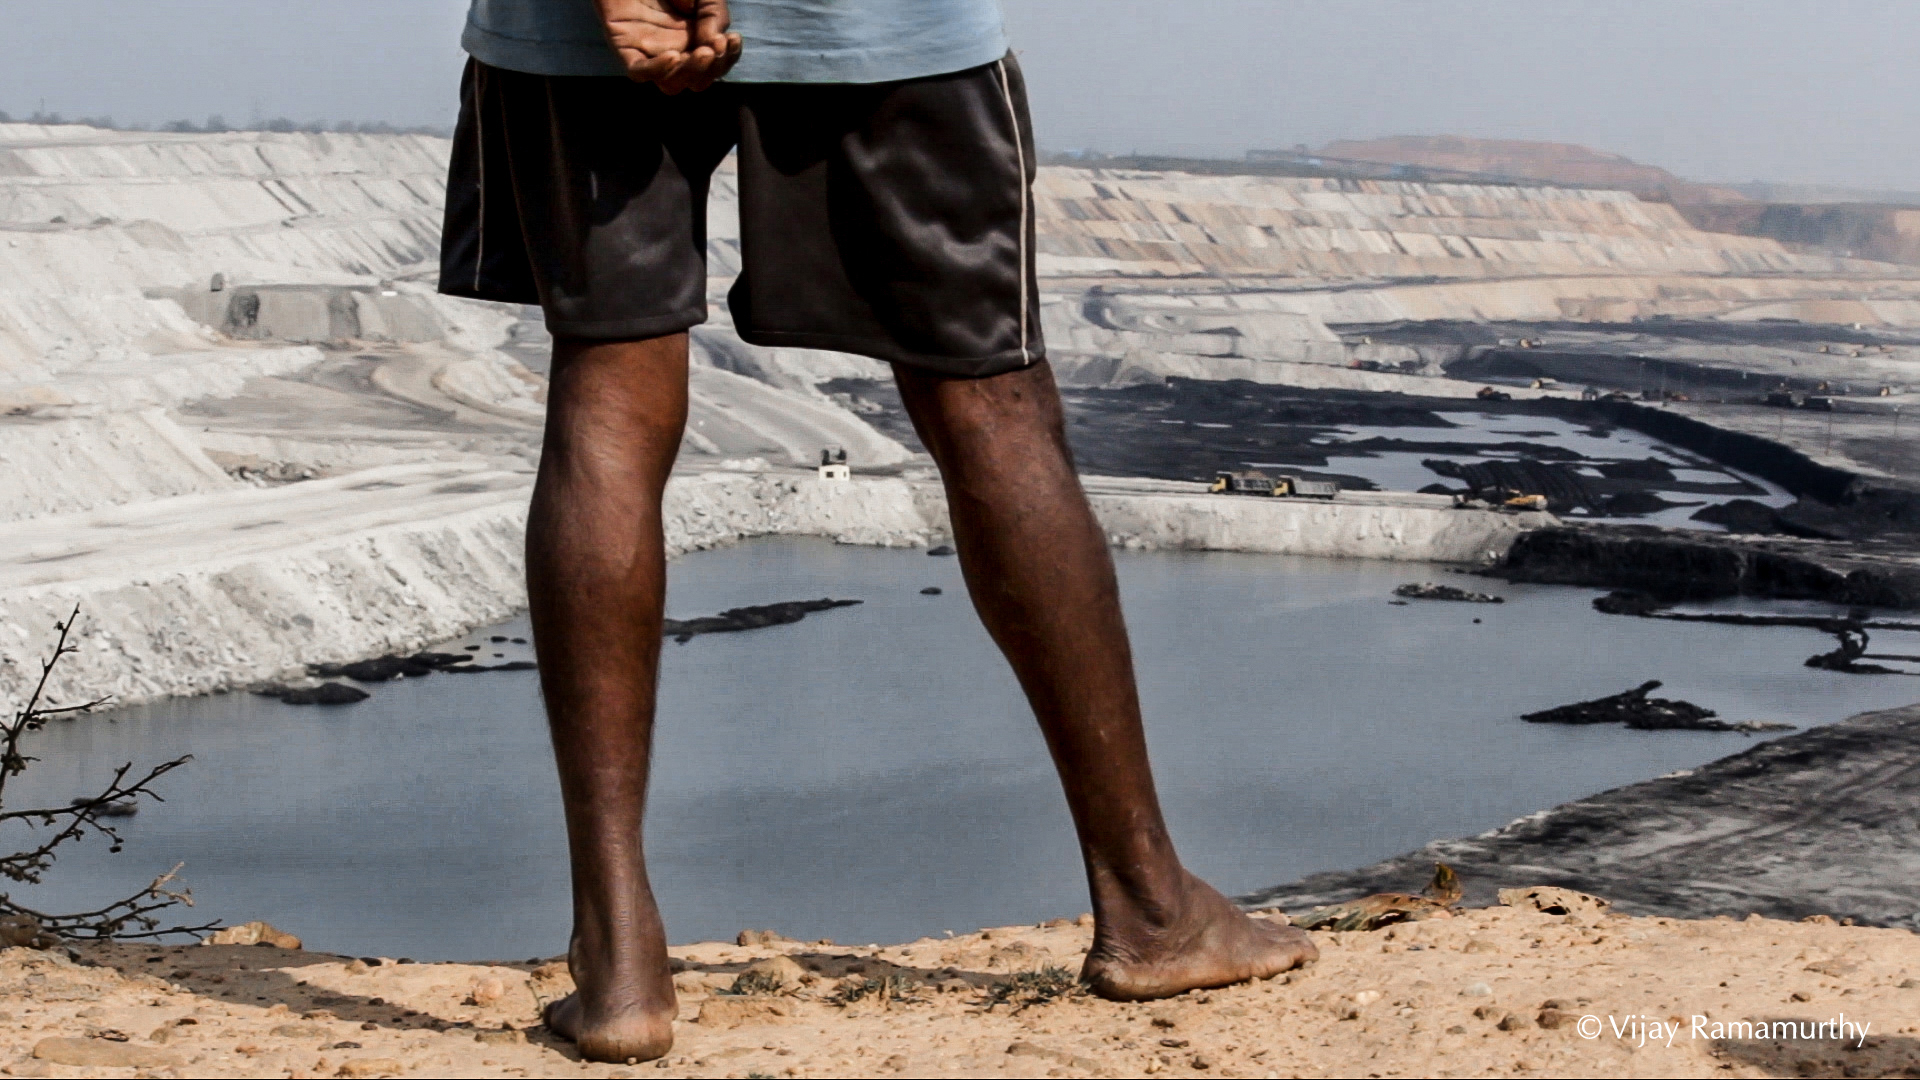 An Adivasi of the Hasdeo forest overlooks the PEKB coal mine, operated by Adani, that destroyed forests and fields. Photo V. Ramamurthy